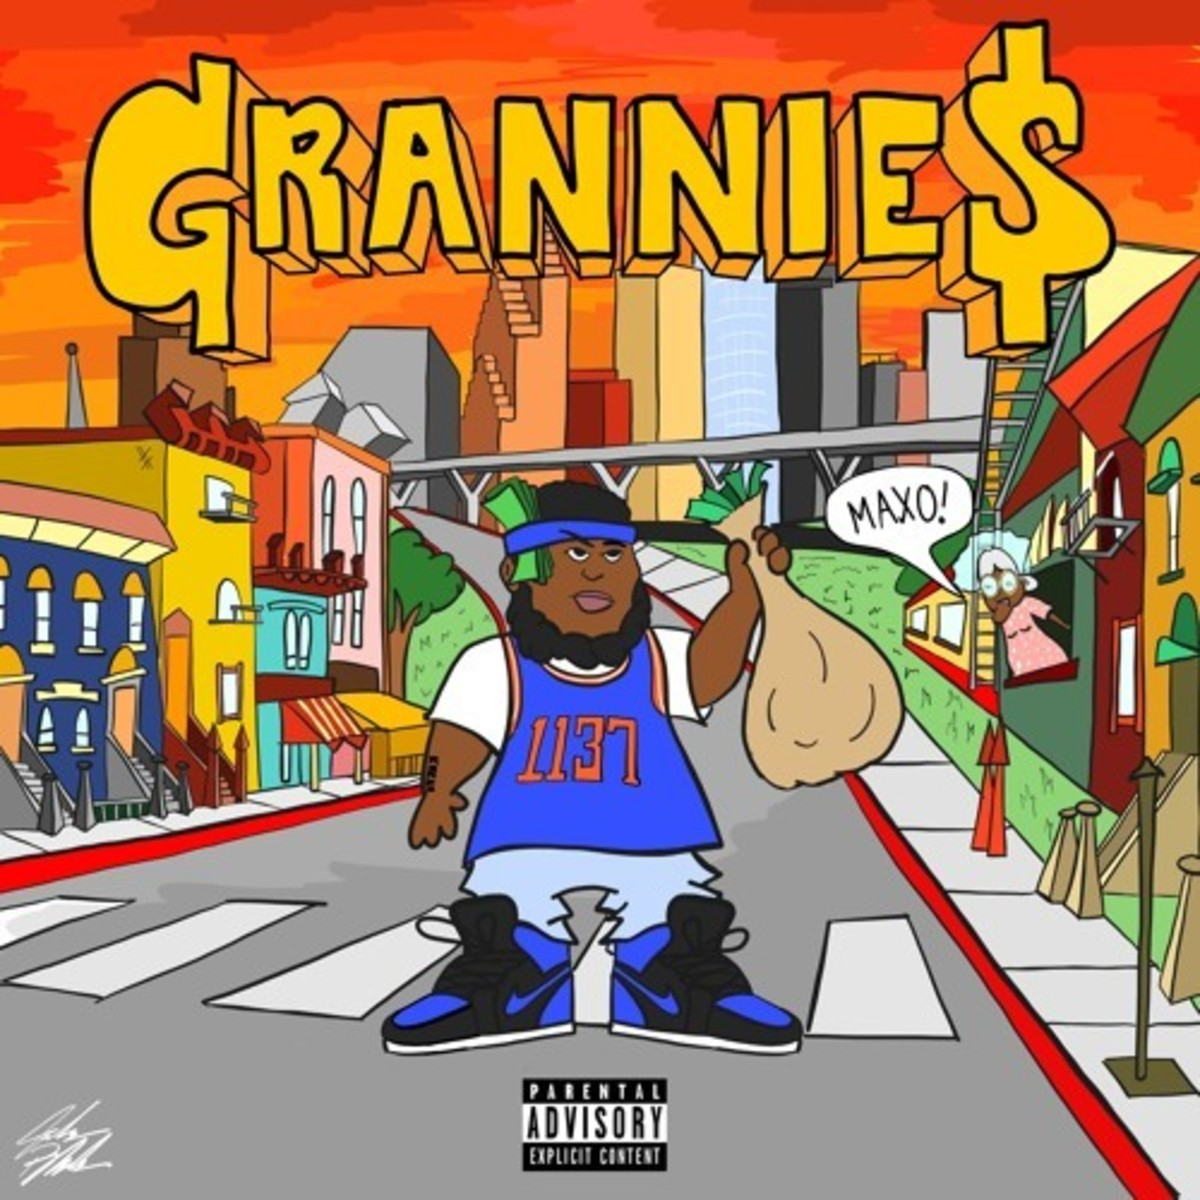 maxo-kream-grannies.jpg